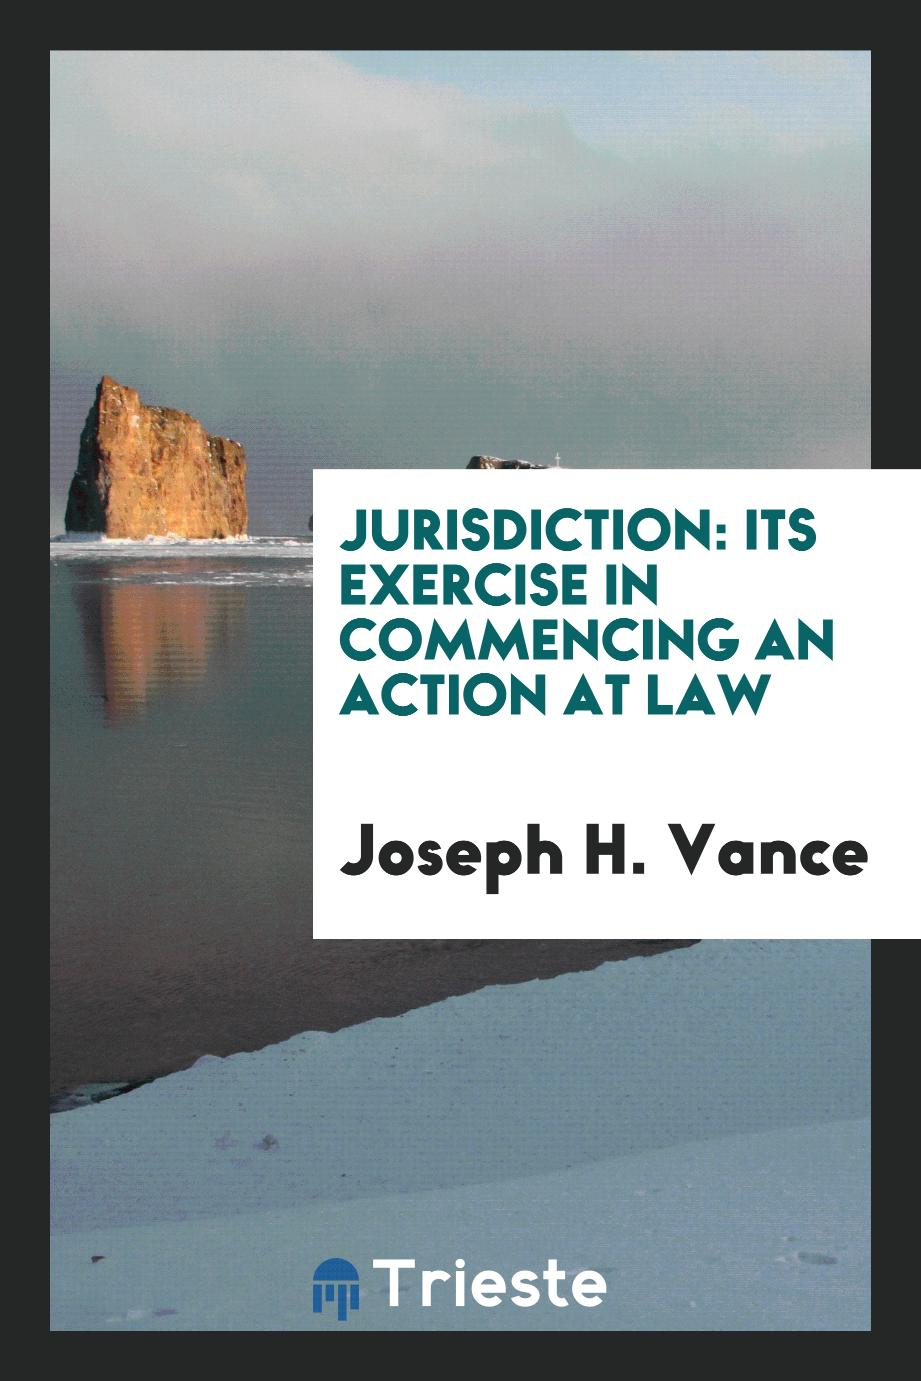 Jurisdiction: Its Exercise in Commencing an Action at Law